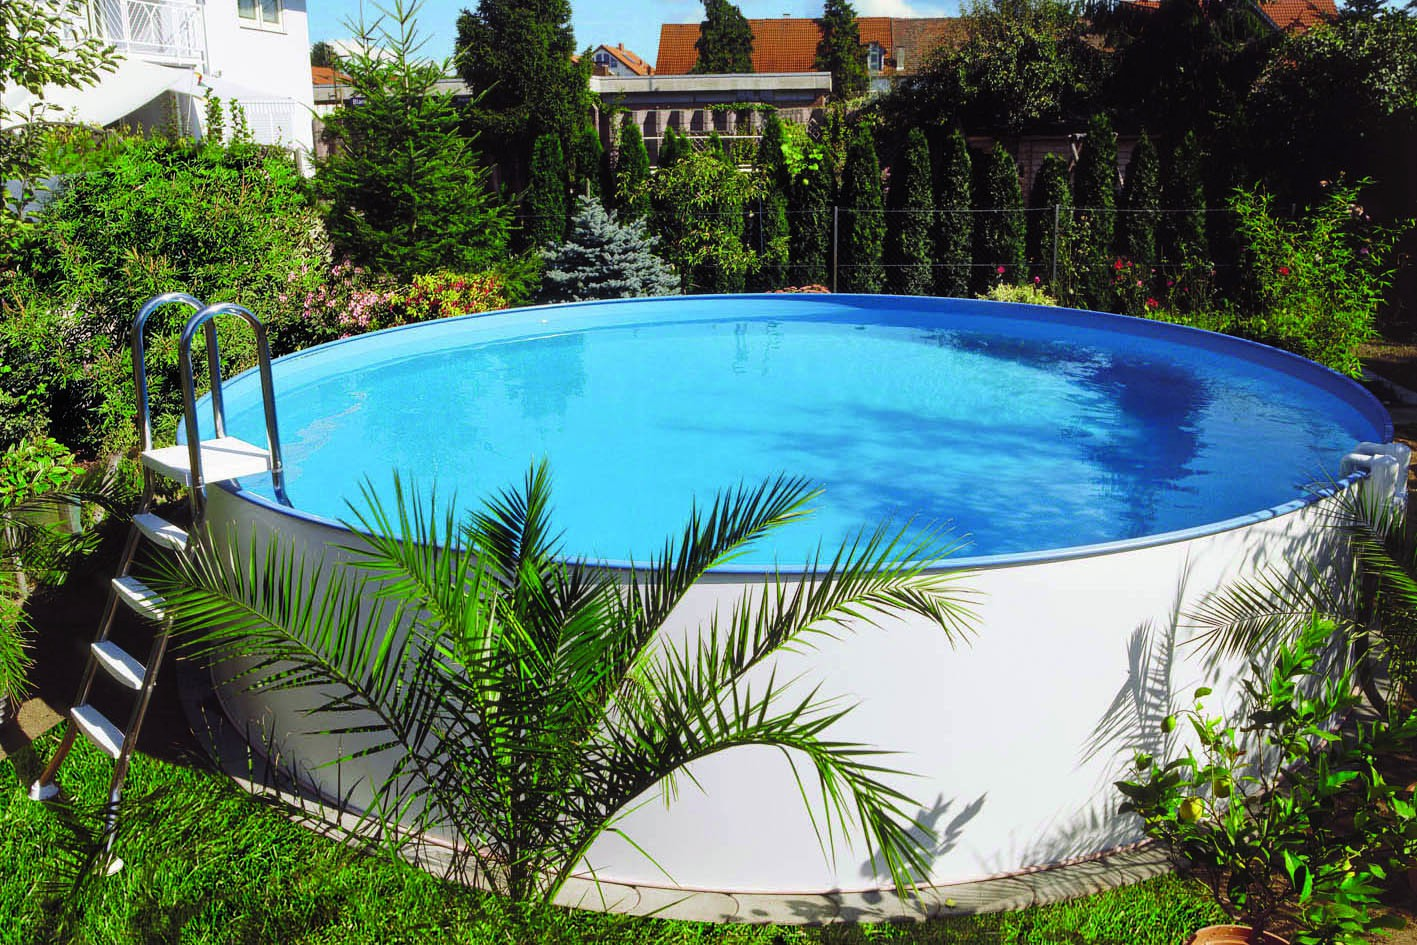 stahlwandpool frei aufstellbar und bodeneinbau 1 20 m tief aufstellpool sunny pool komplett. Black Bedroom Furniture Sets. Home Design Ideas